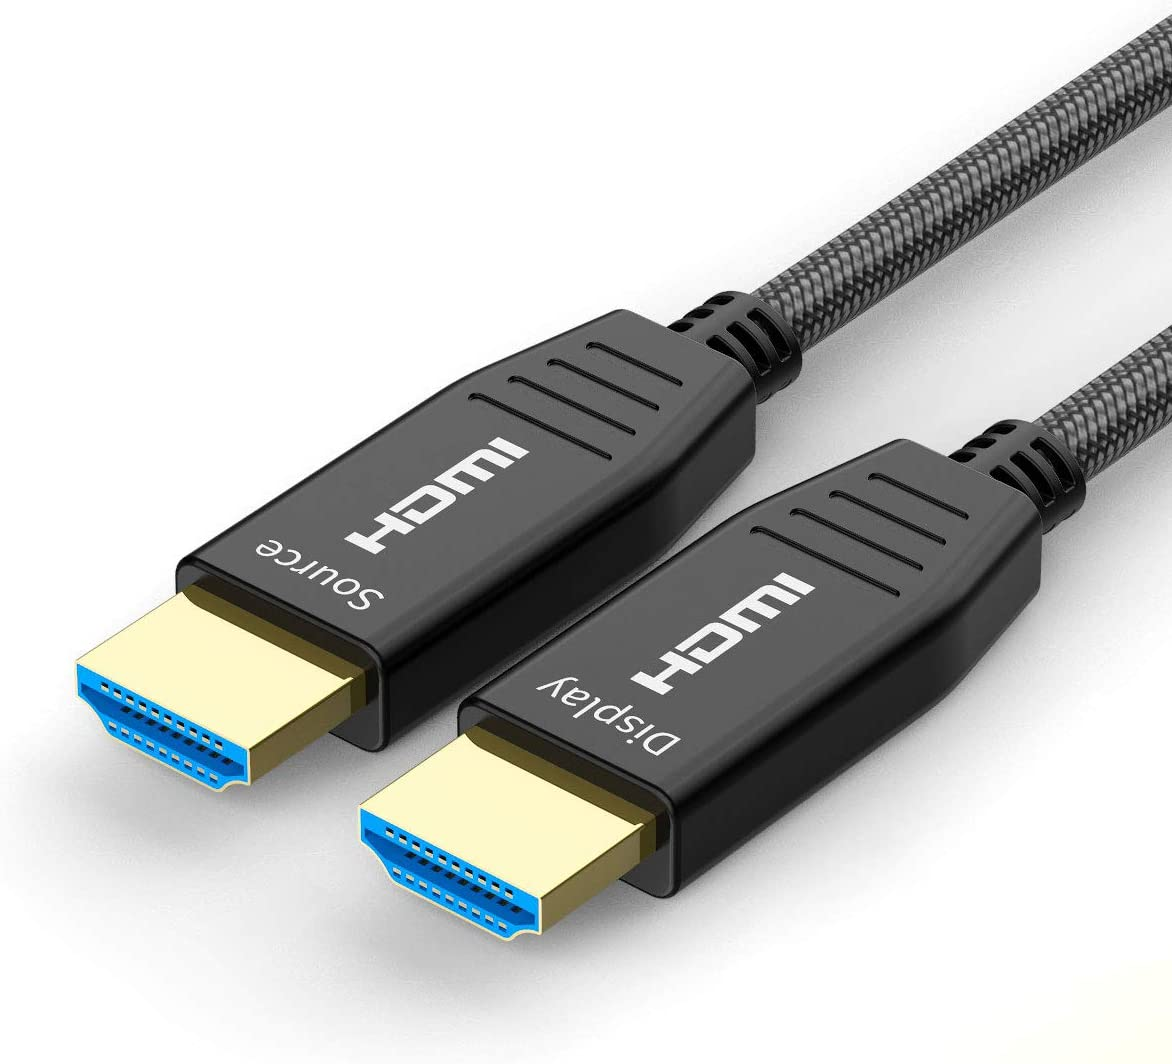 Fiber HDMI Cable 2021new Limited time for free shipping shipping free 100ft 4K Optic Cabl 60Hz 2.0b FURUI